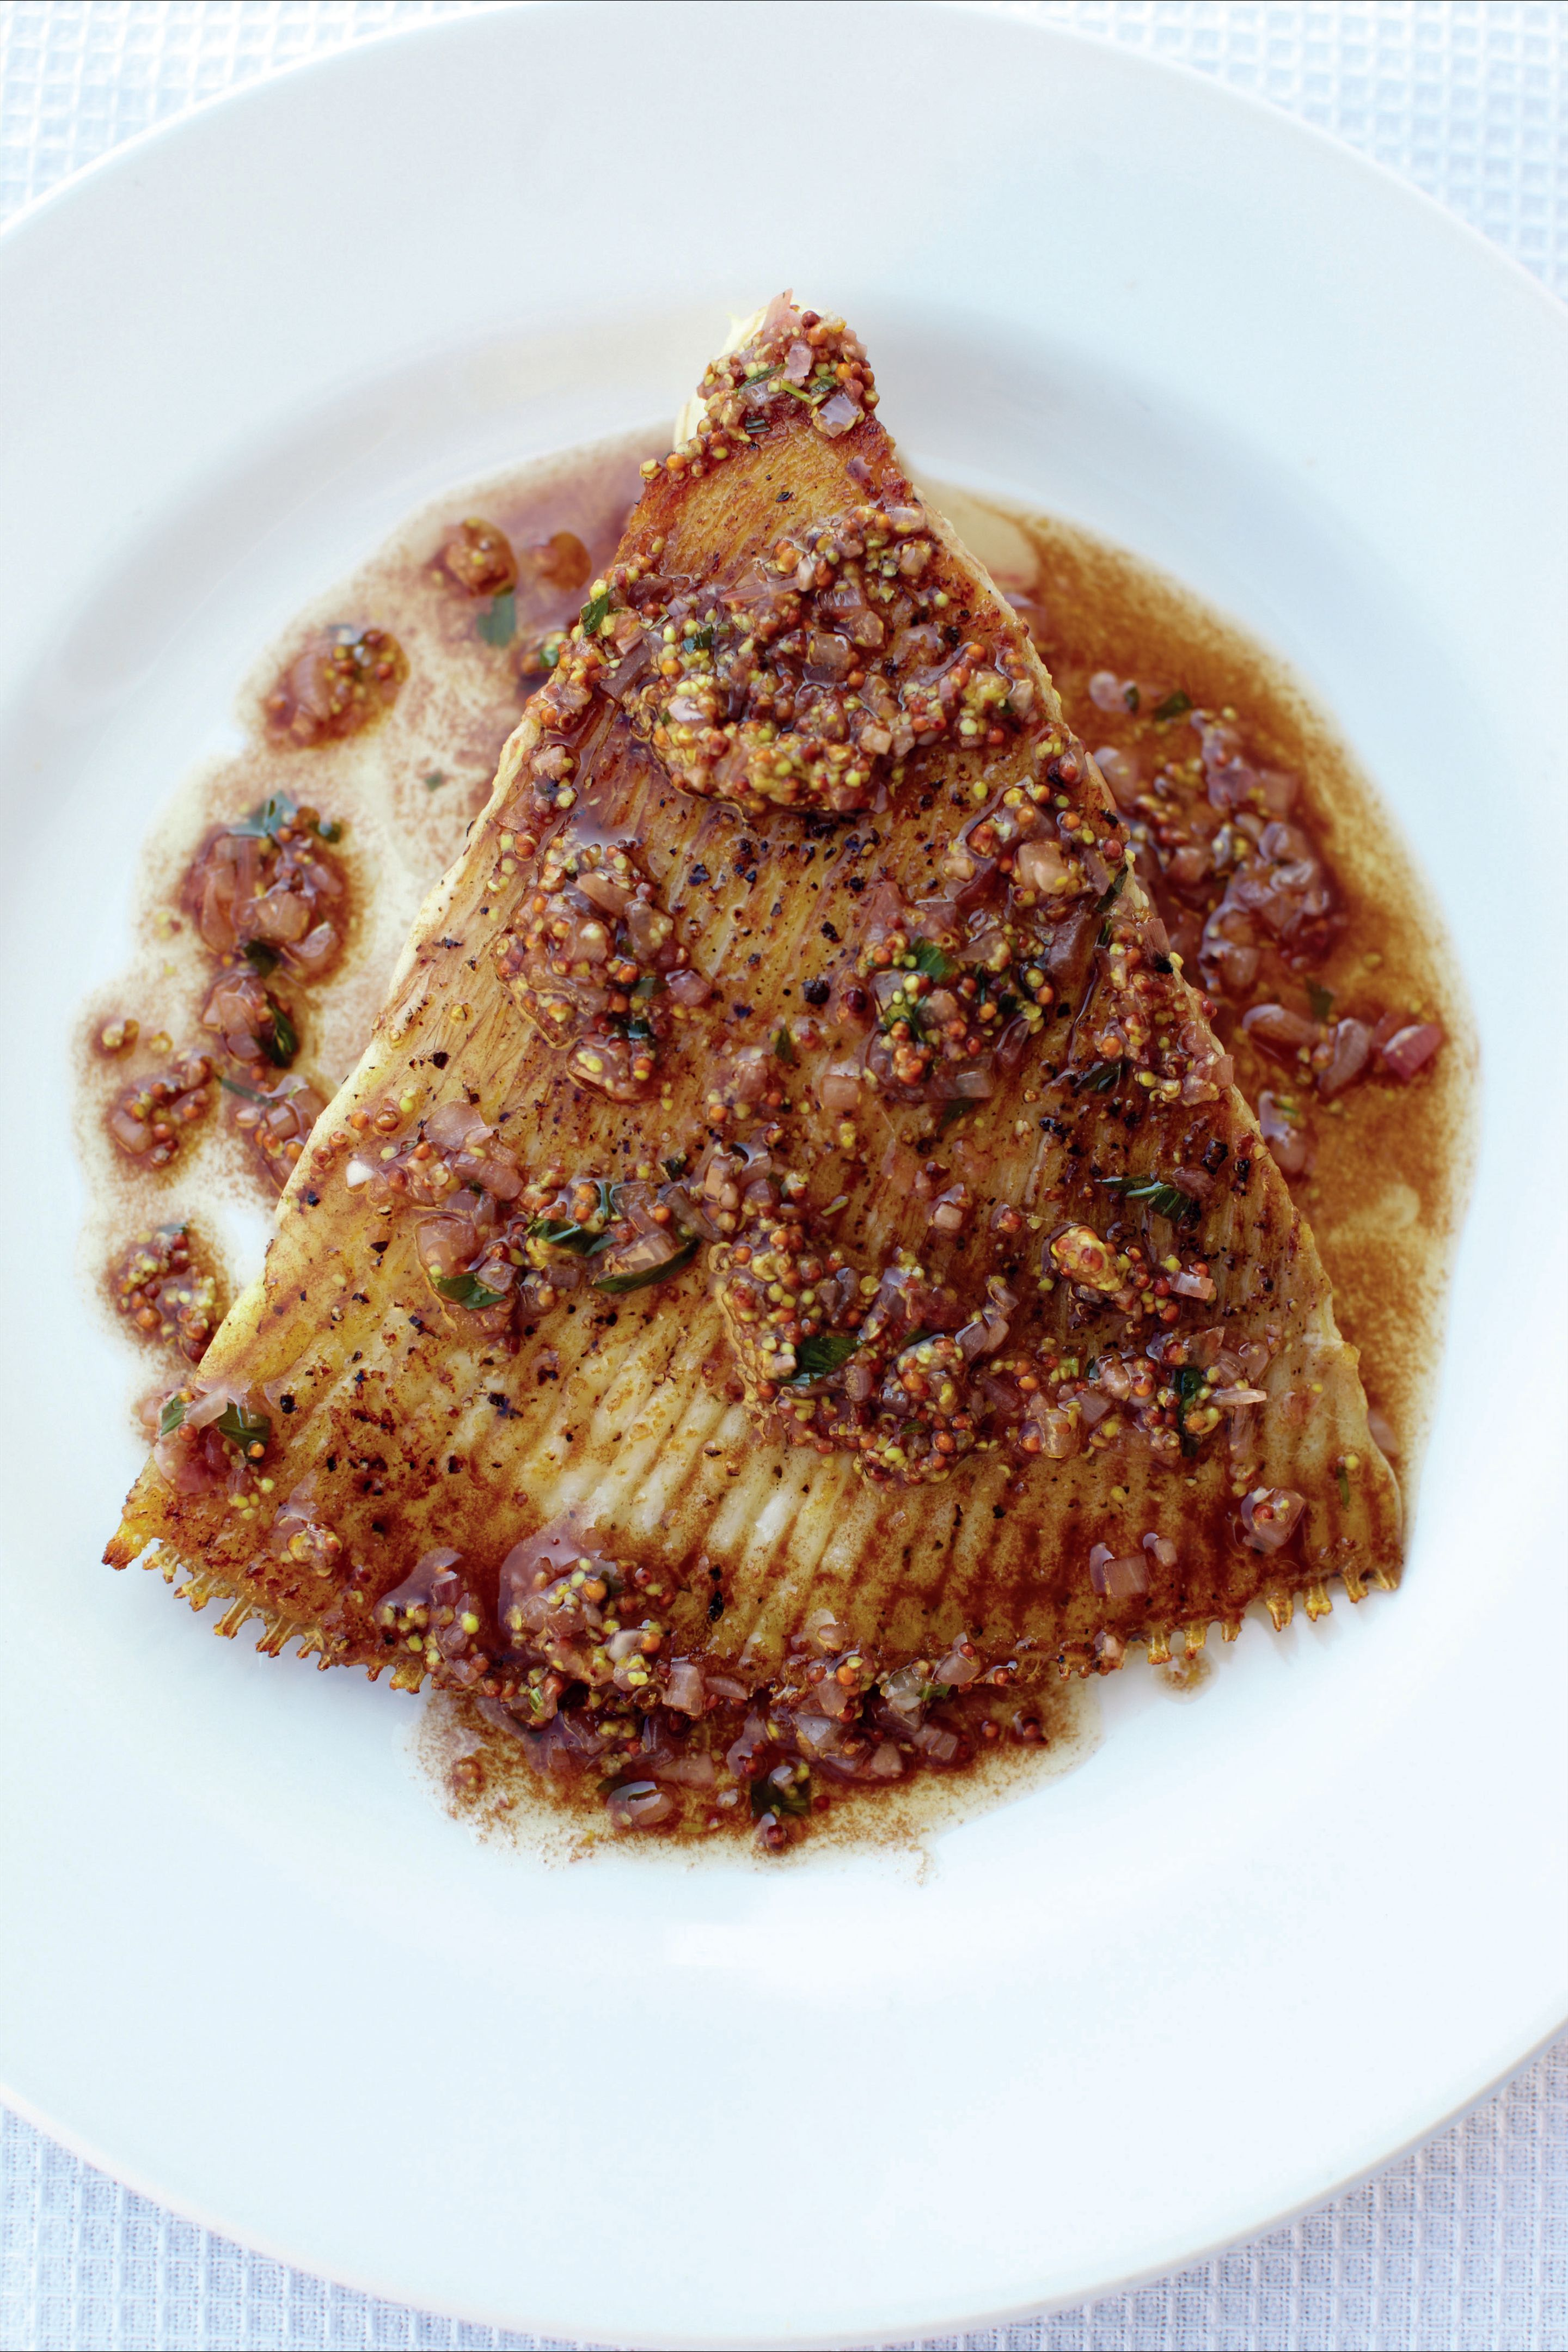 Peppered ray with tarragon, lemon and mustard brown butter